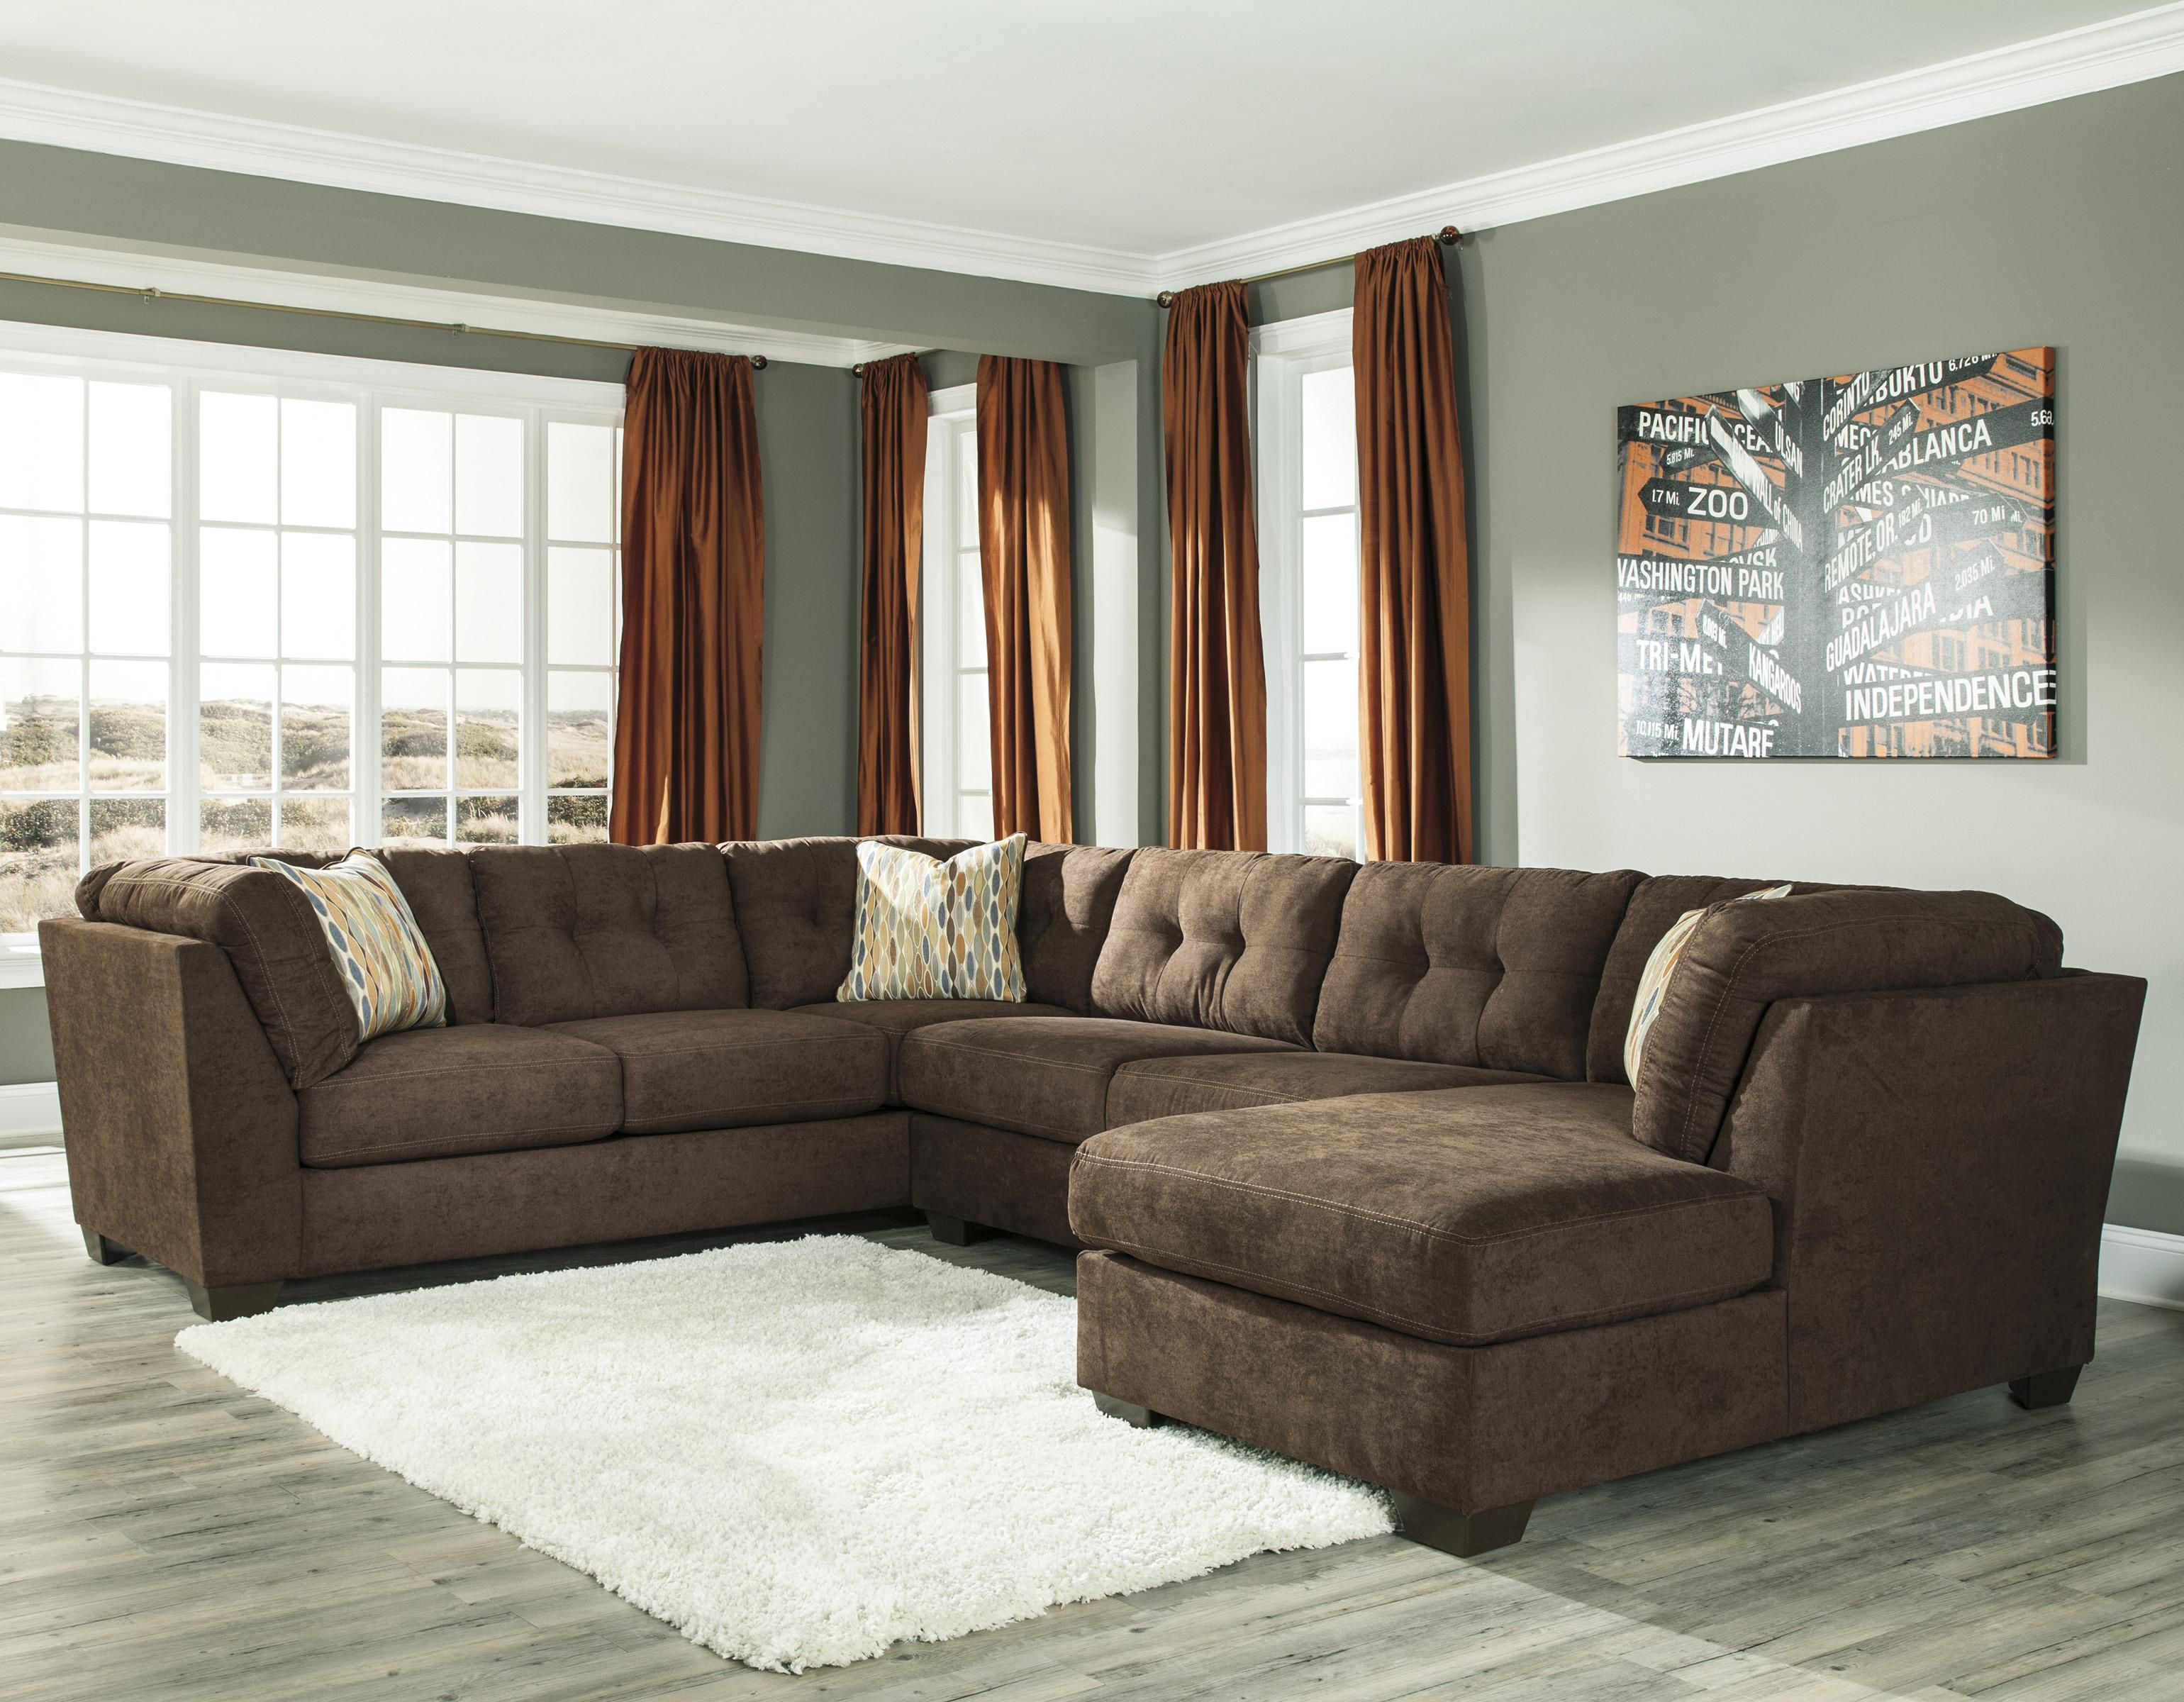 Ashley/Benchcraft Delta City - Chocolate 3-Piece Sectional w/ Sleeper & Right Chaise - Item Number: 1970238+71+17